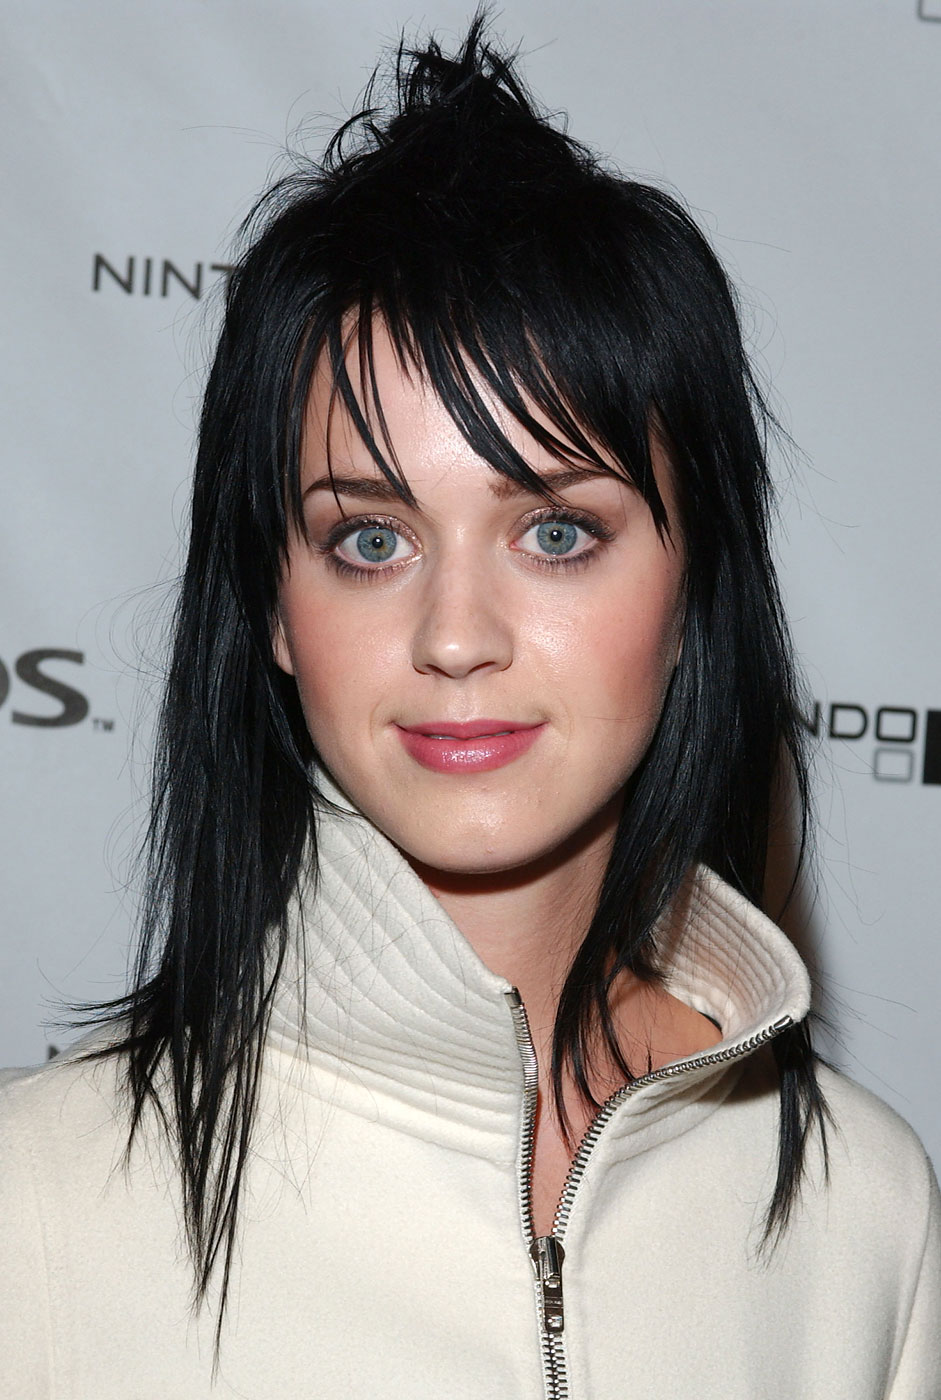 Katy Perry attends the Nintendo DS Pre-Launch Party at The Day After in 2004.